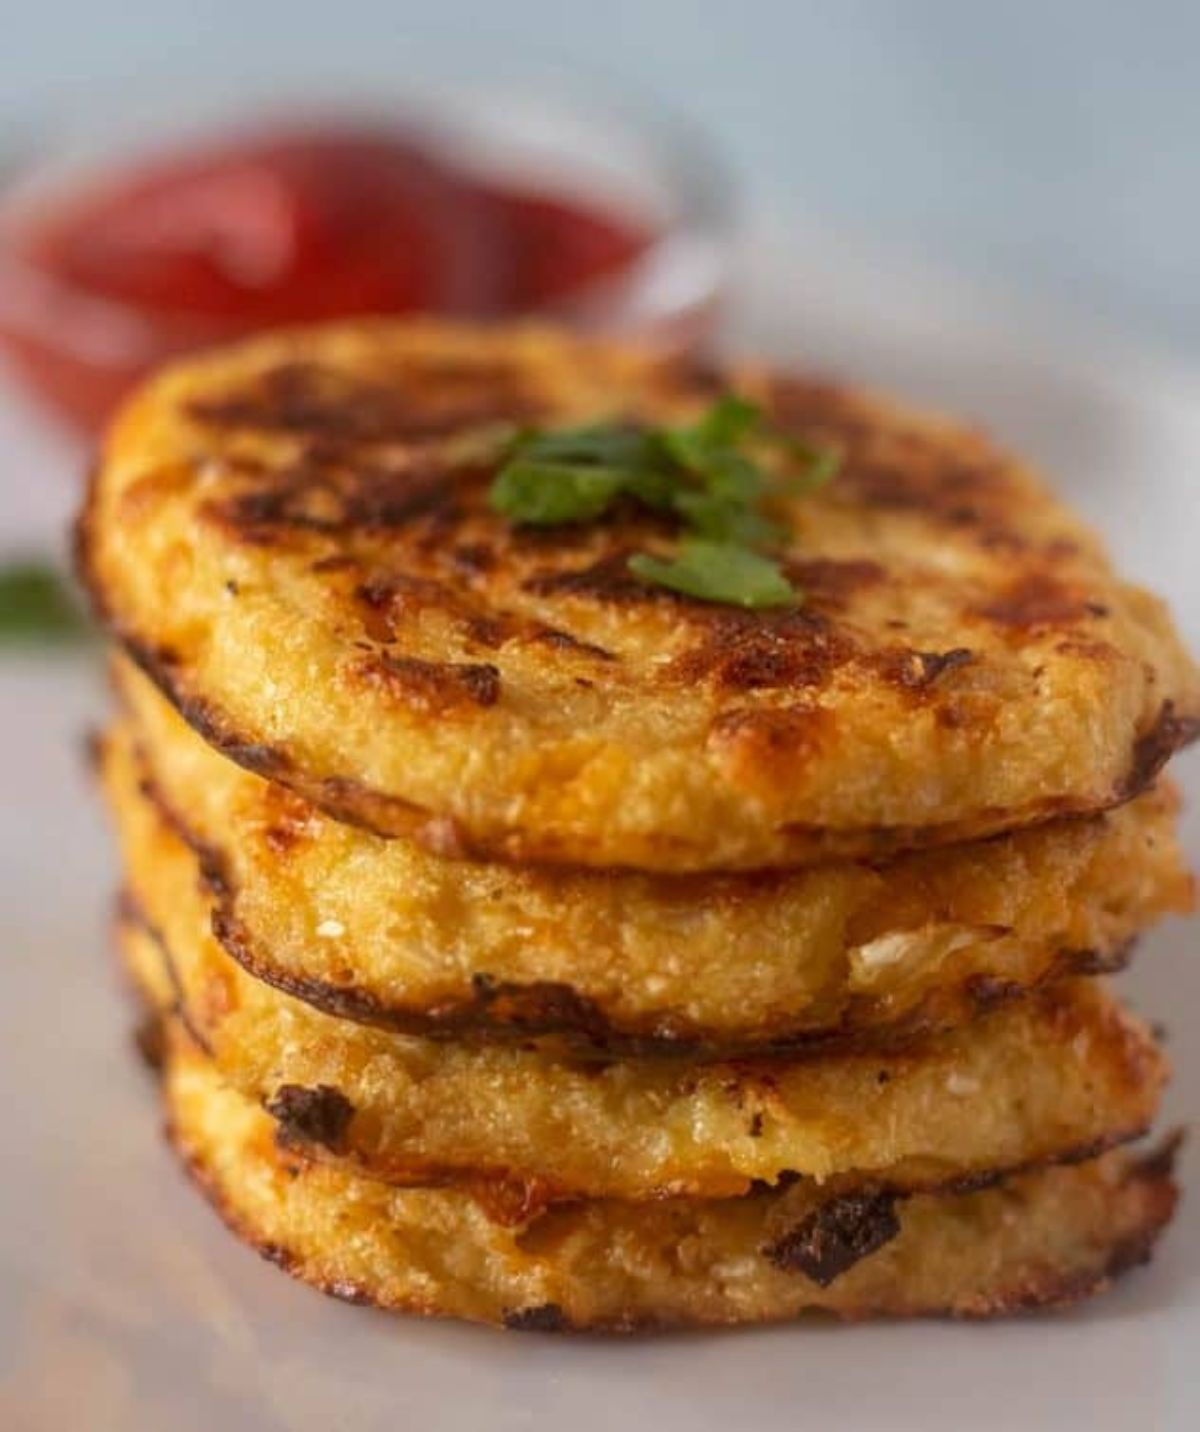 WIth a blurred background of a pot of red sauce, a stack of four hash browns with chopped herbs on top